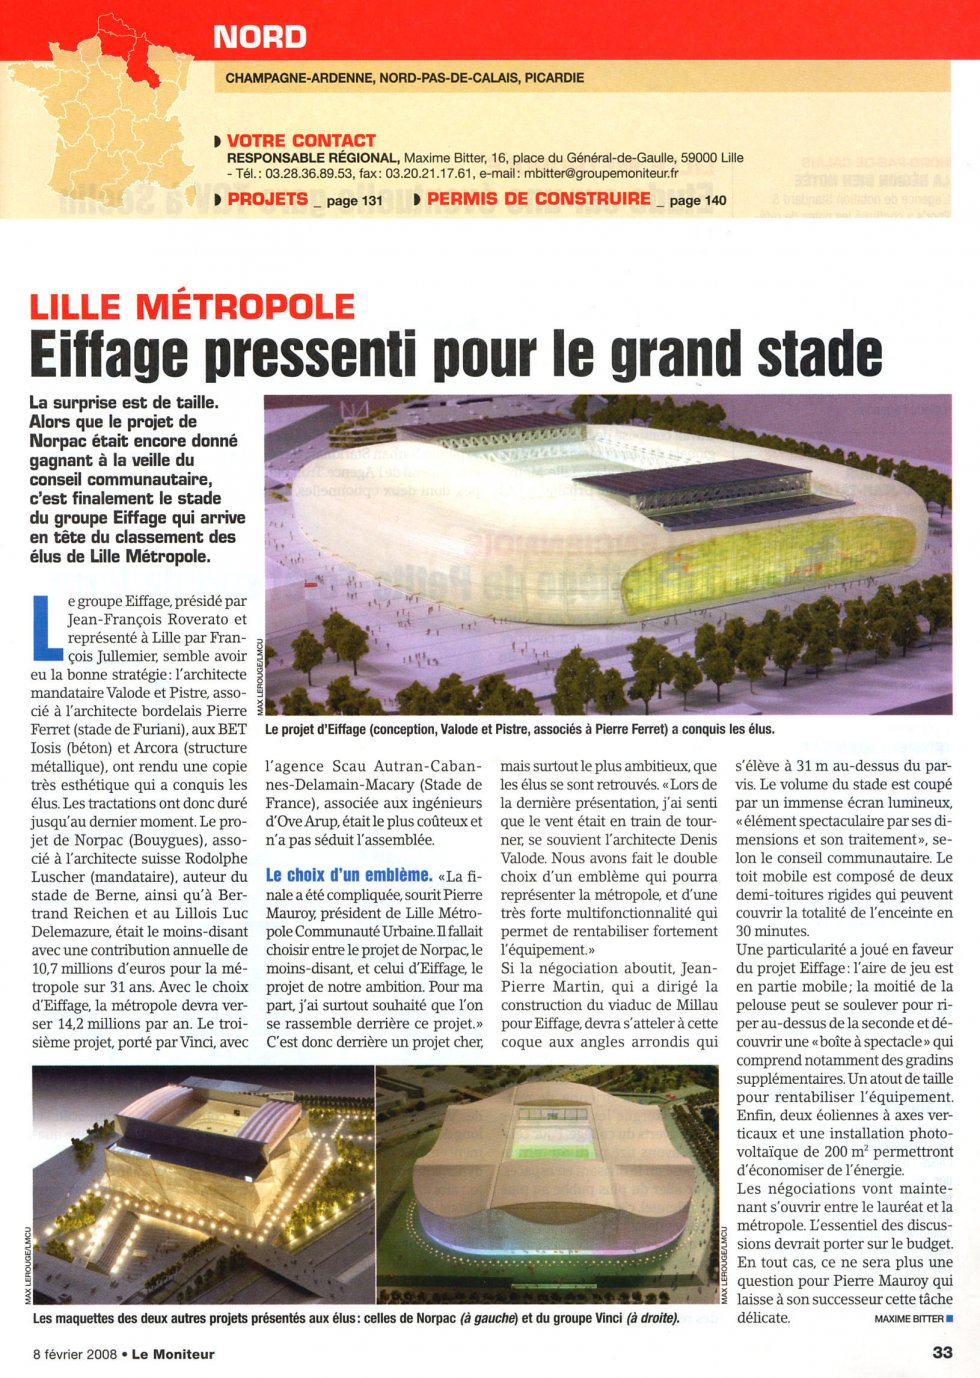 Eiffage approached for the Lille Stadium